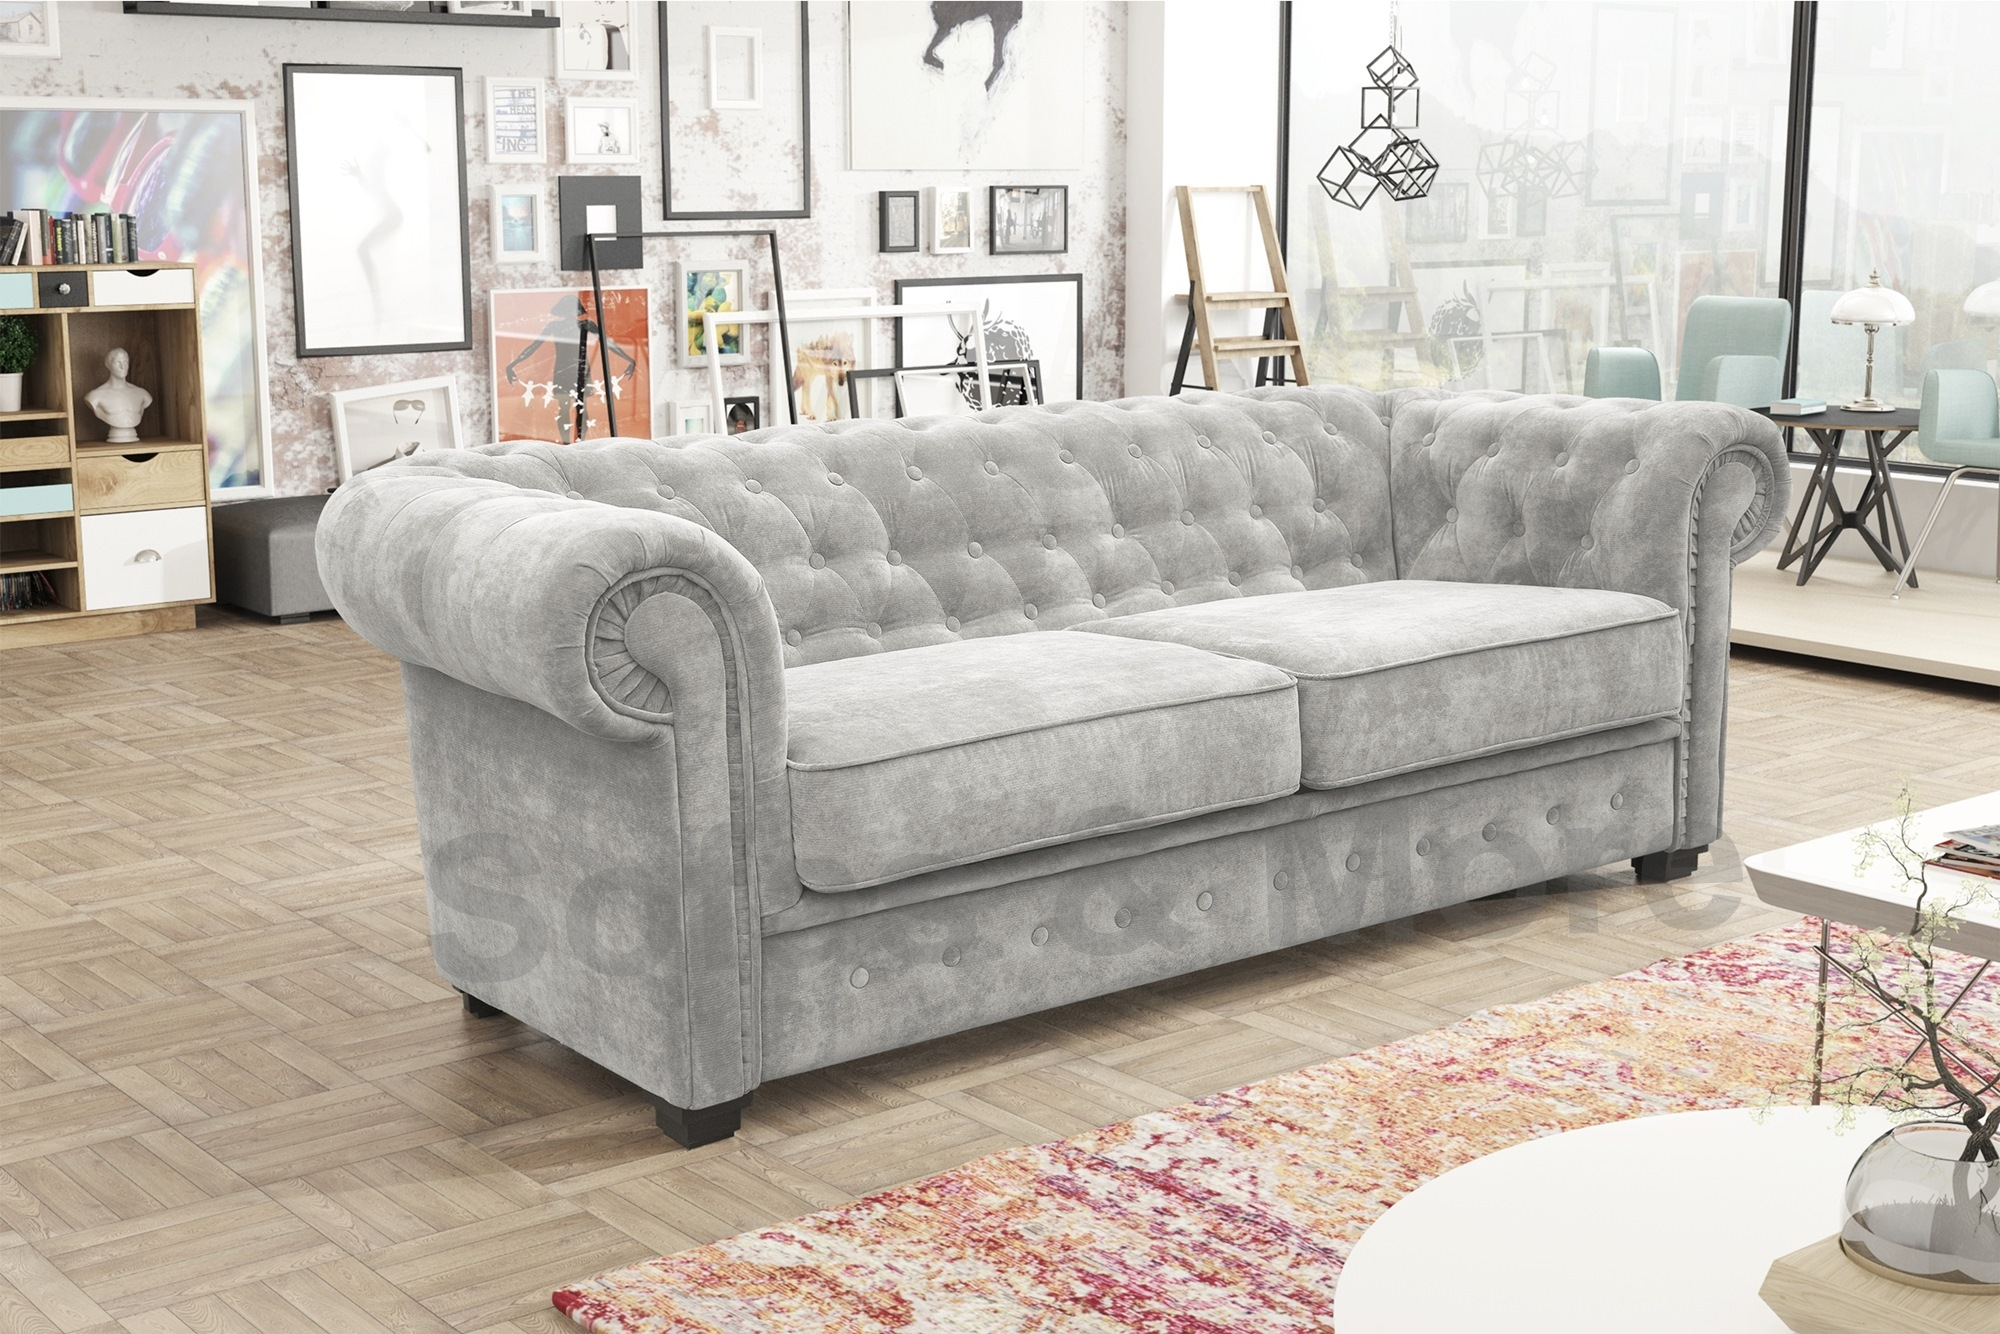 venus chesterfield style 3 seater sofa bed armchair fabric grey cream brown ebay. Black Bedroom Furniture Sets. Home Design Ideas